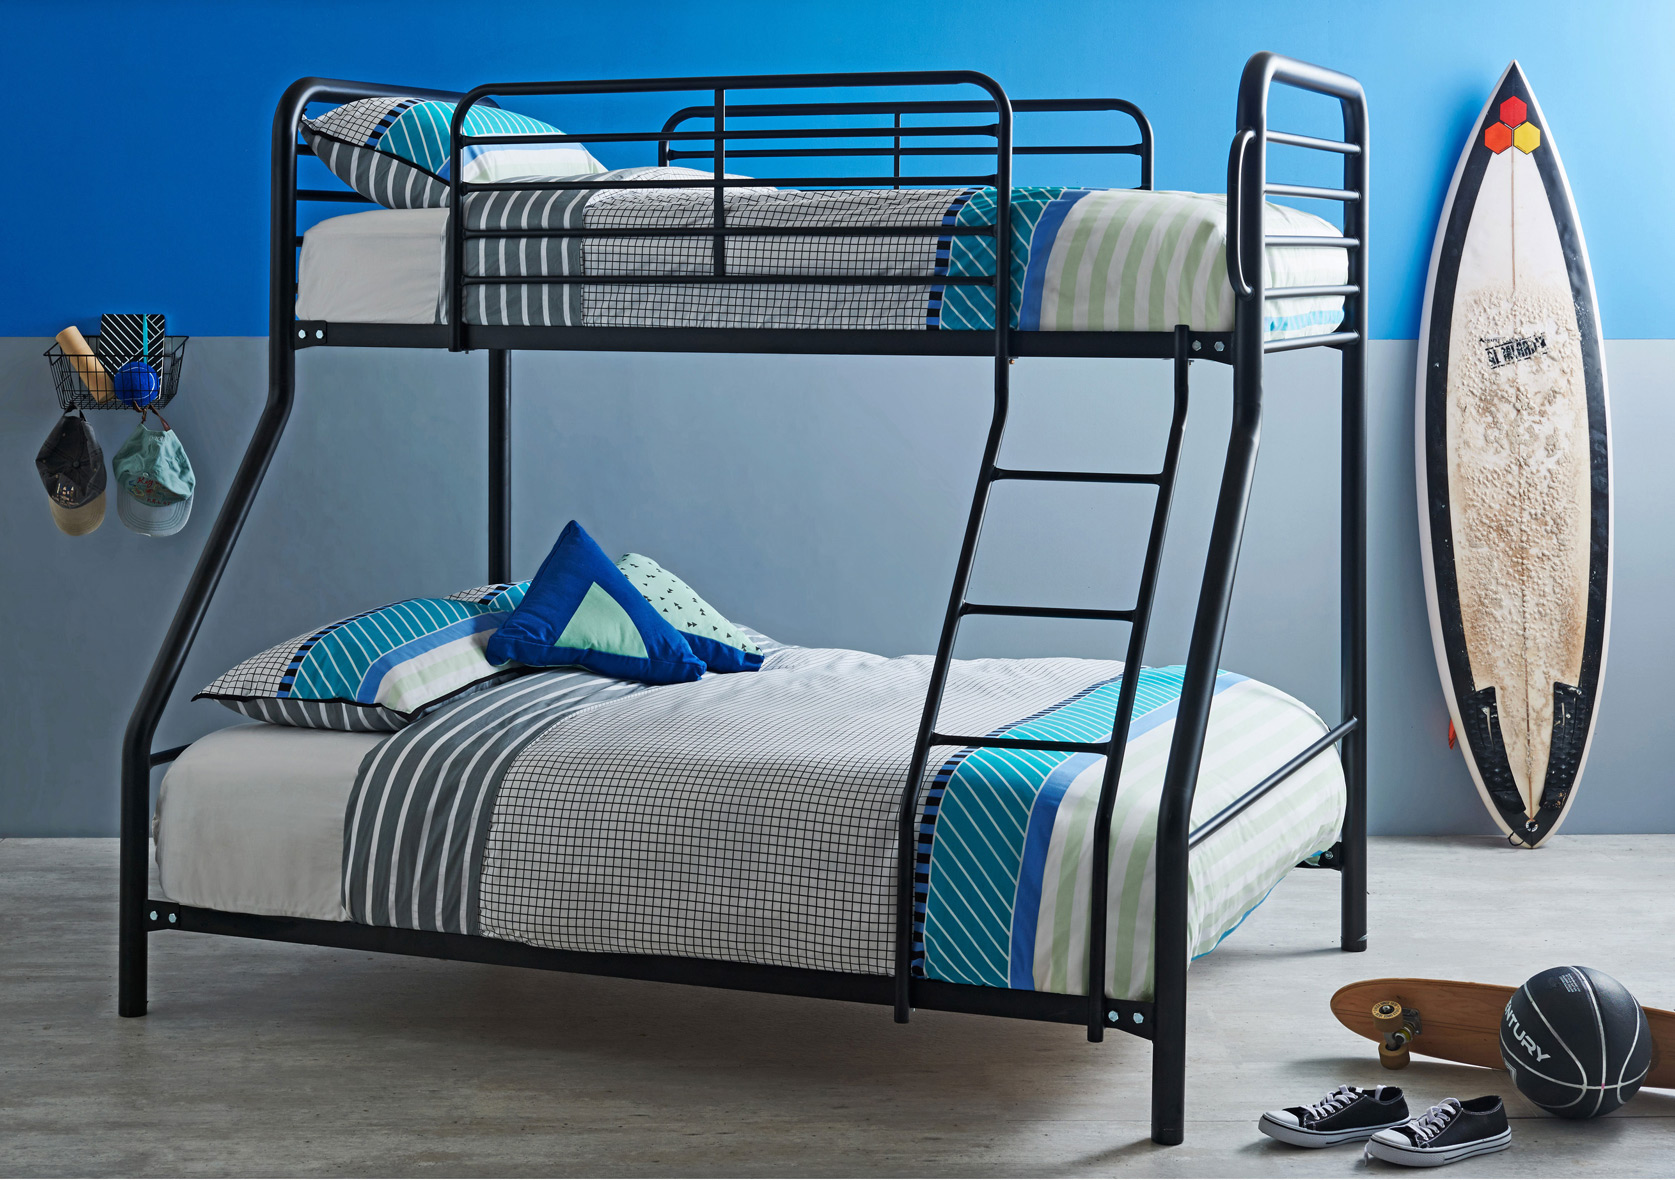 Our Best Bunk Beds And Quilt Covers For Kids This Spring